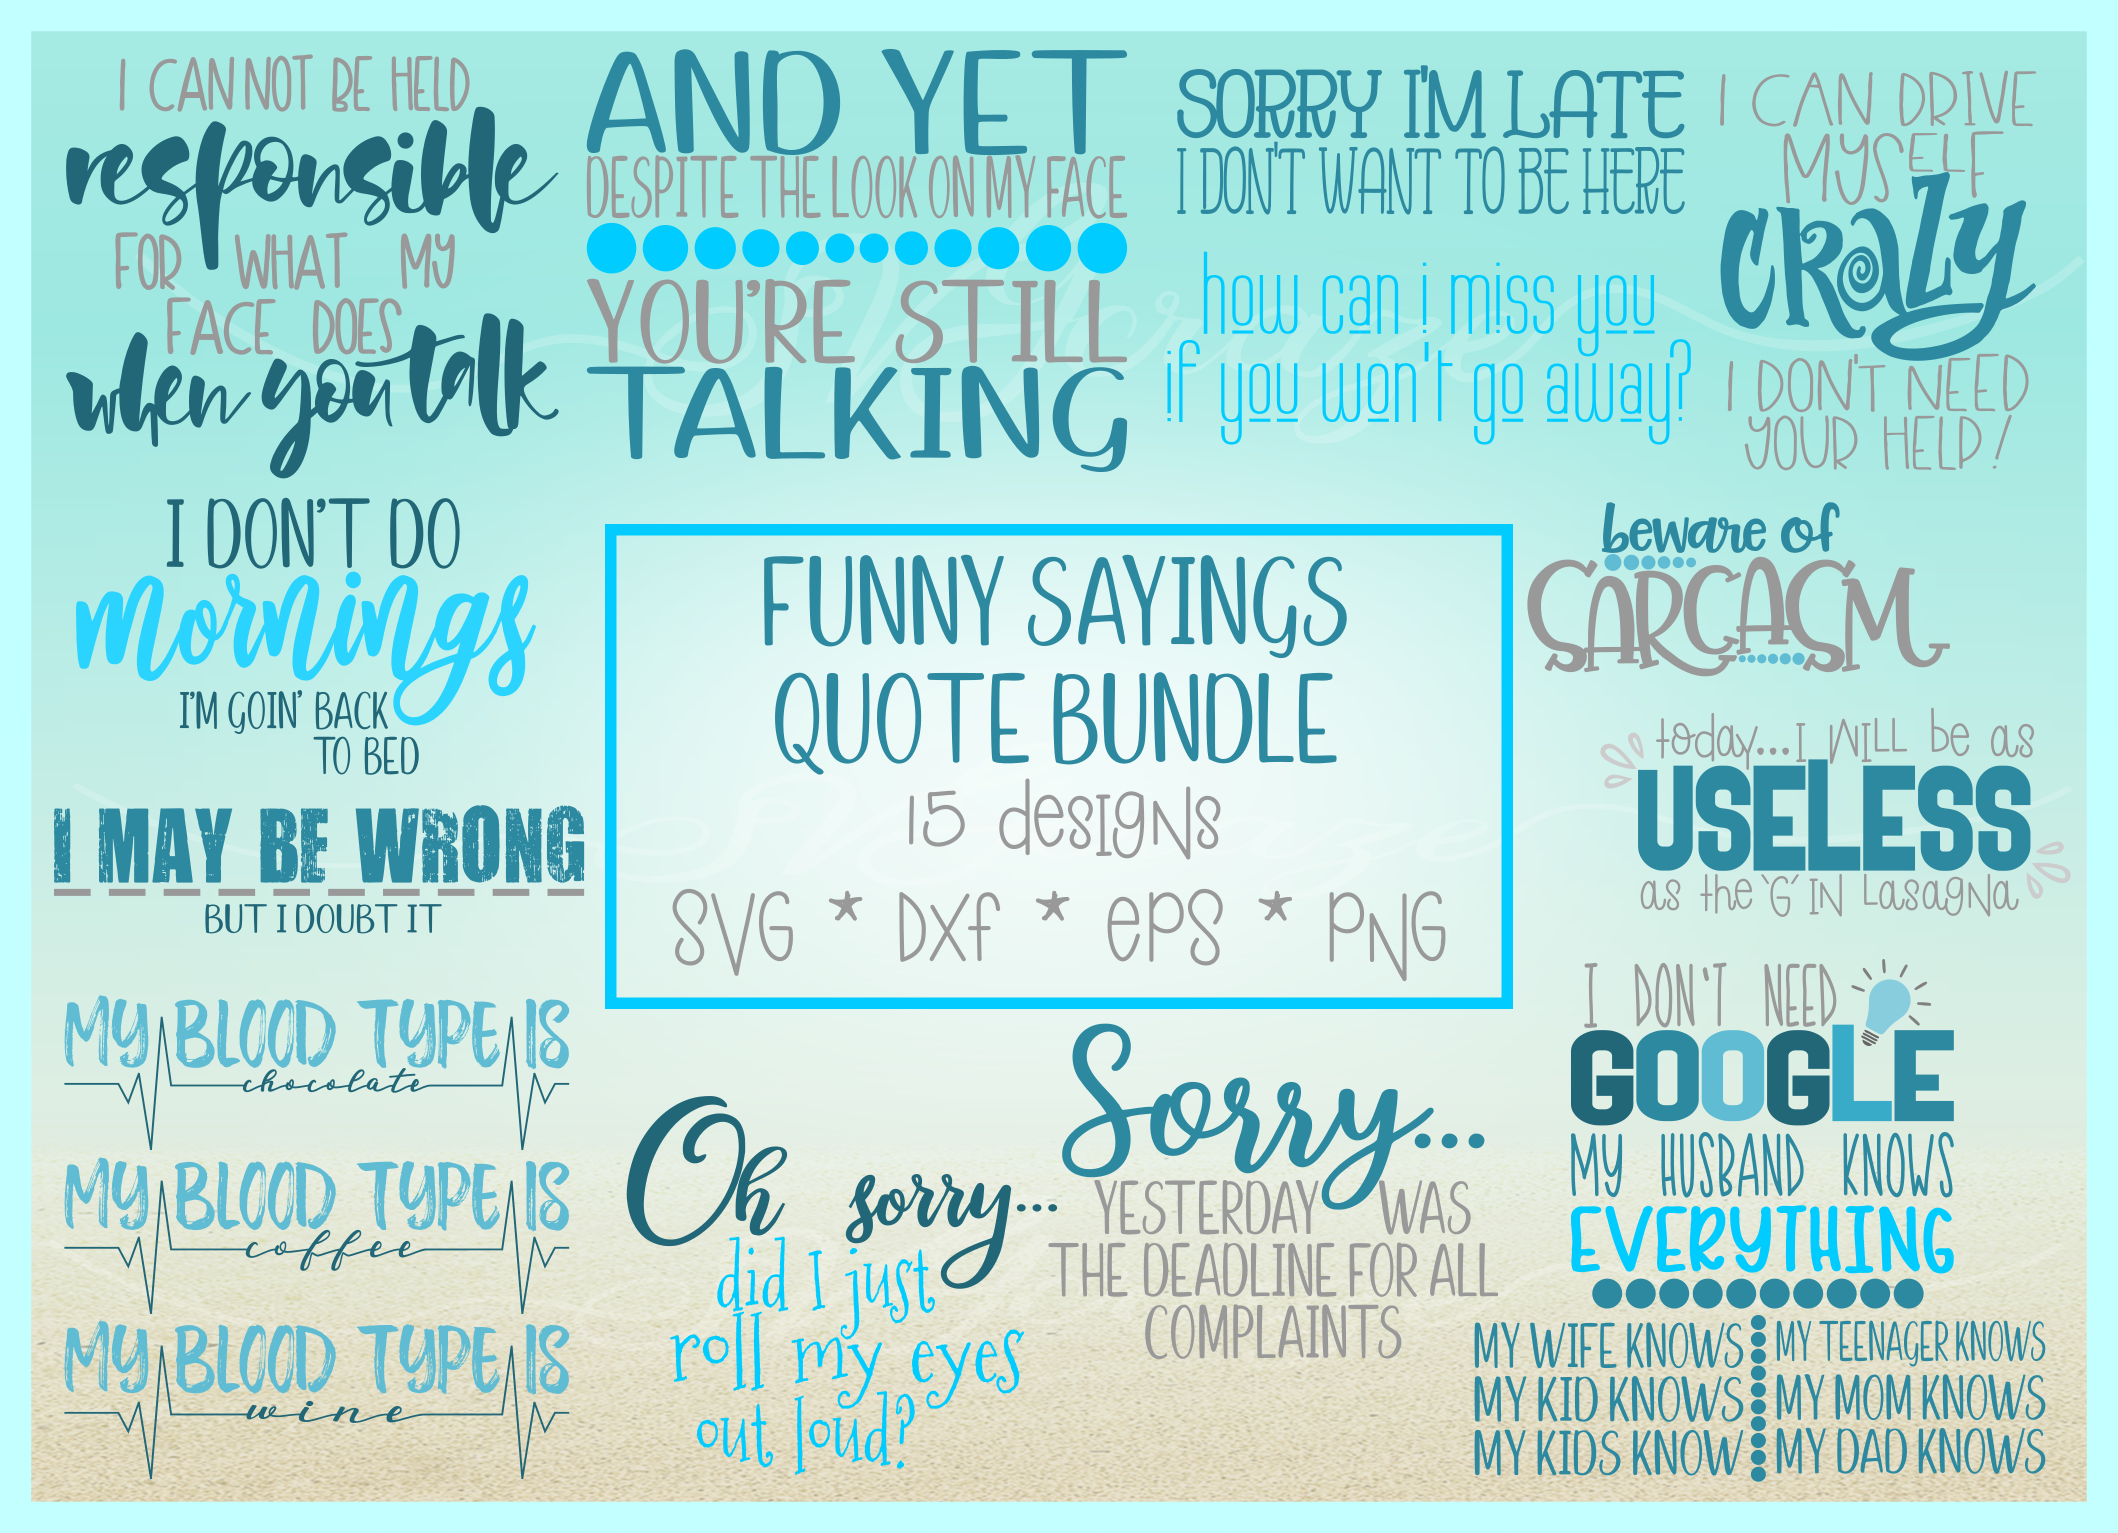 Funny Sayings Quote Bundle SVG Dxf Eps Pdf PNG files for Cri example image 3